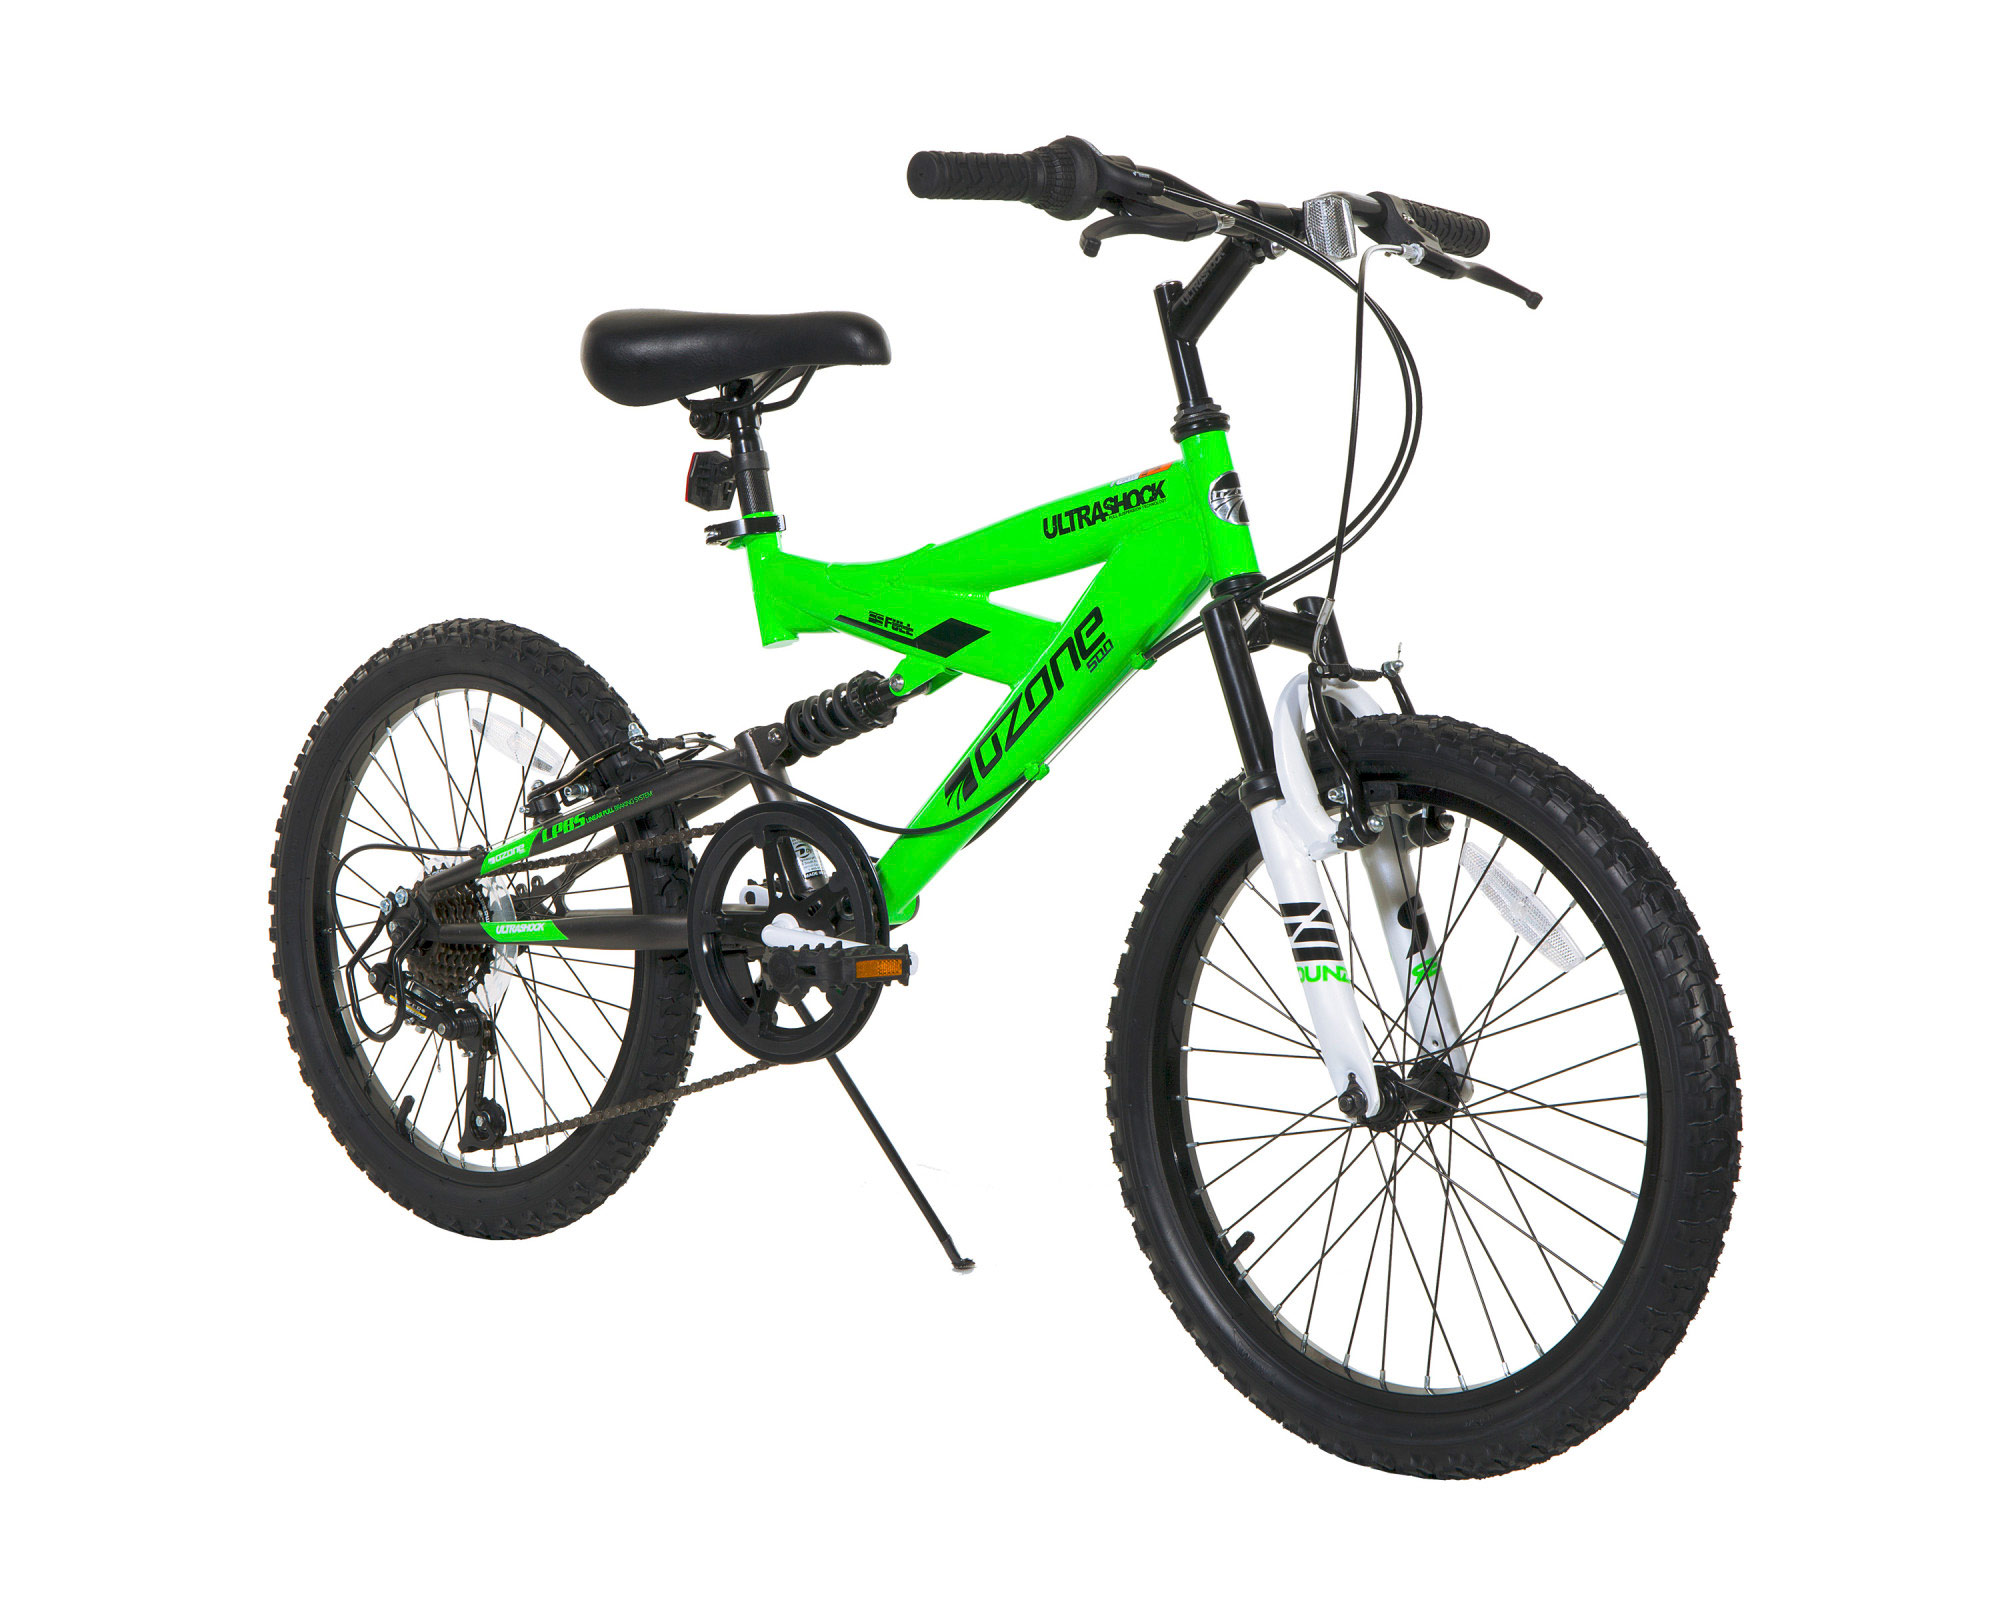 b89194c4bd5 Latest Info about Bicycle Parts Here So far miles been getting popular Tv.  Only ridden times, purepower, downhill stable. Operating Costs Many  portable ...